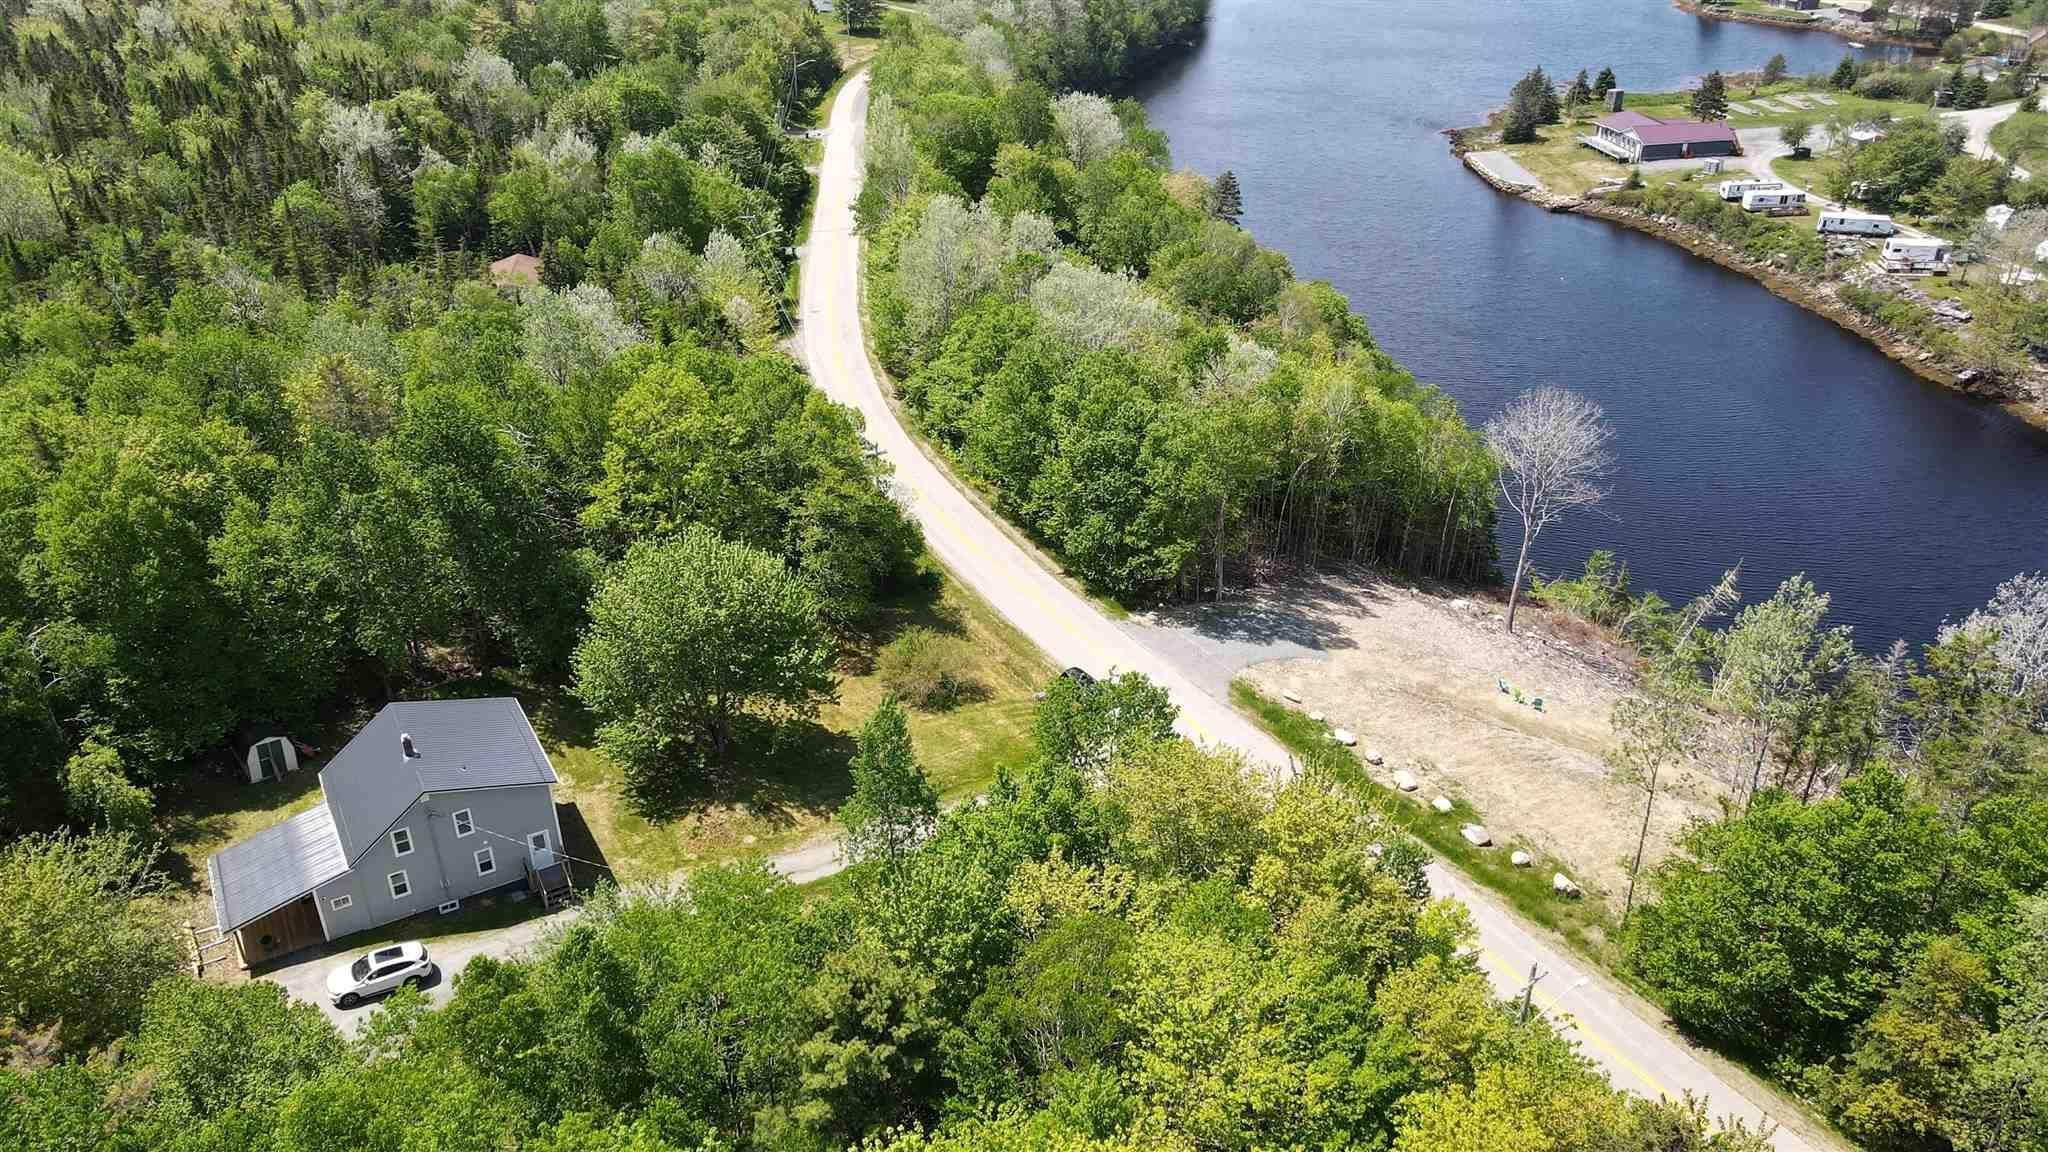 Photo 4: Photos: 284 East River Road in Sheet Harbour: 35-Halifax County East Residential for sale (Halifax-Dartmouth)  : MLS®# 202120104